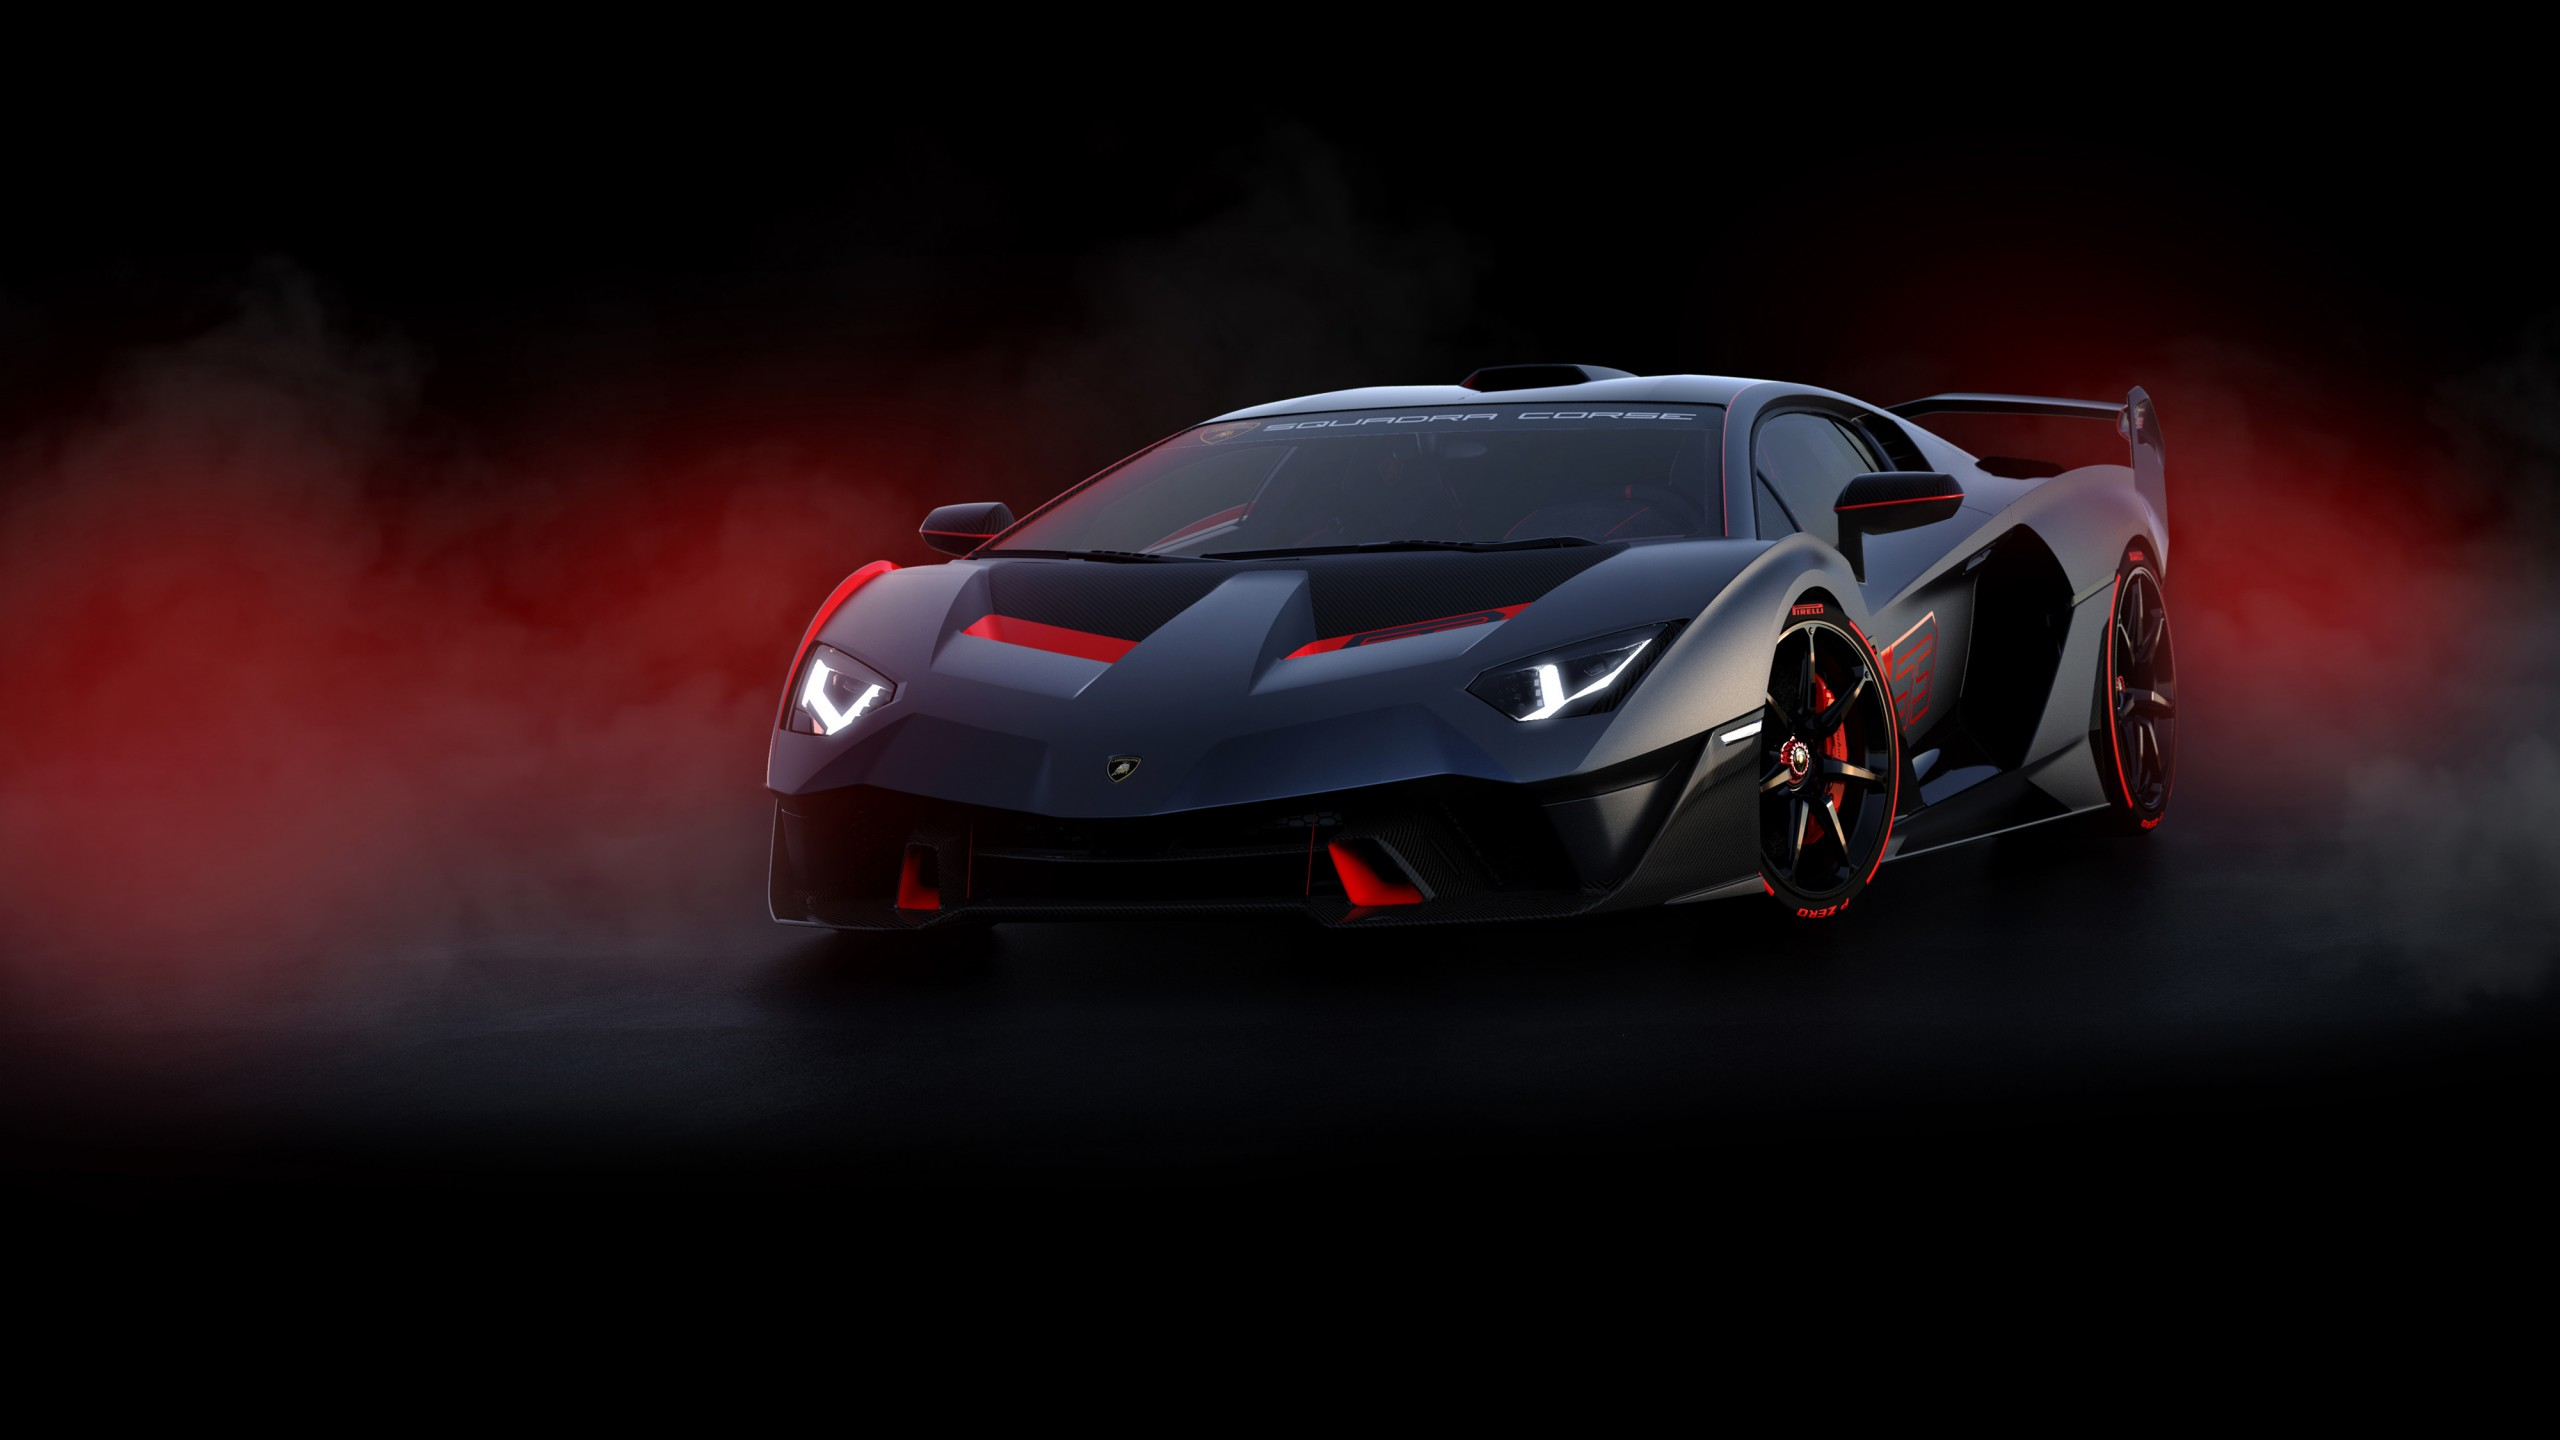 Top Hd Wallpapers Cars Wallpapers Desktop Hd: Lamborghini SC18 2019 4K 6 Wallpaper